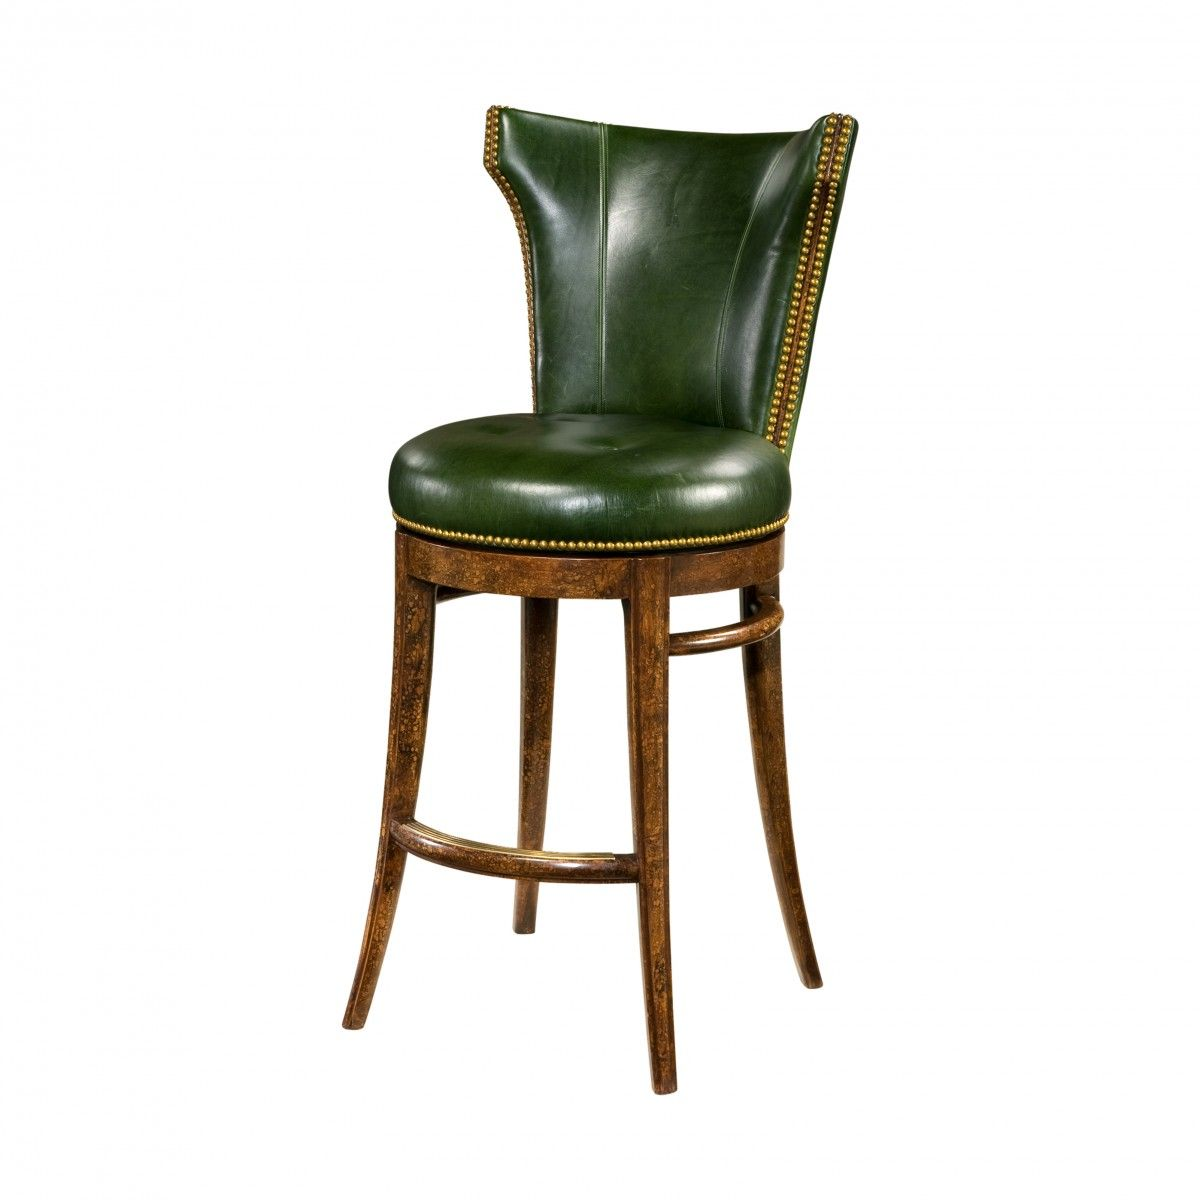 Green leather and mahogany bar stool